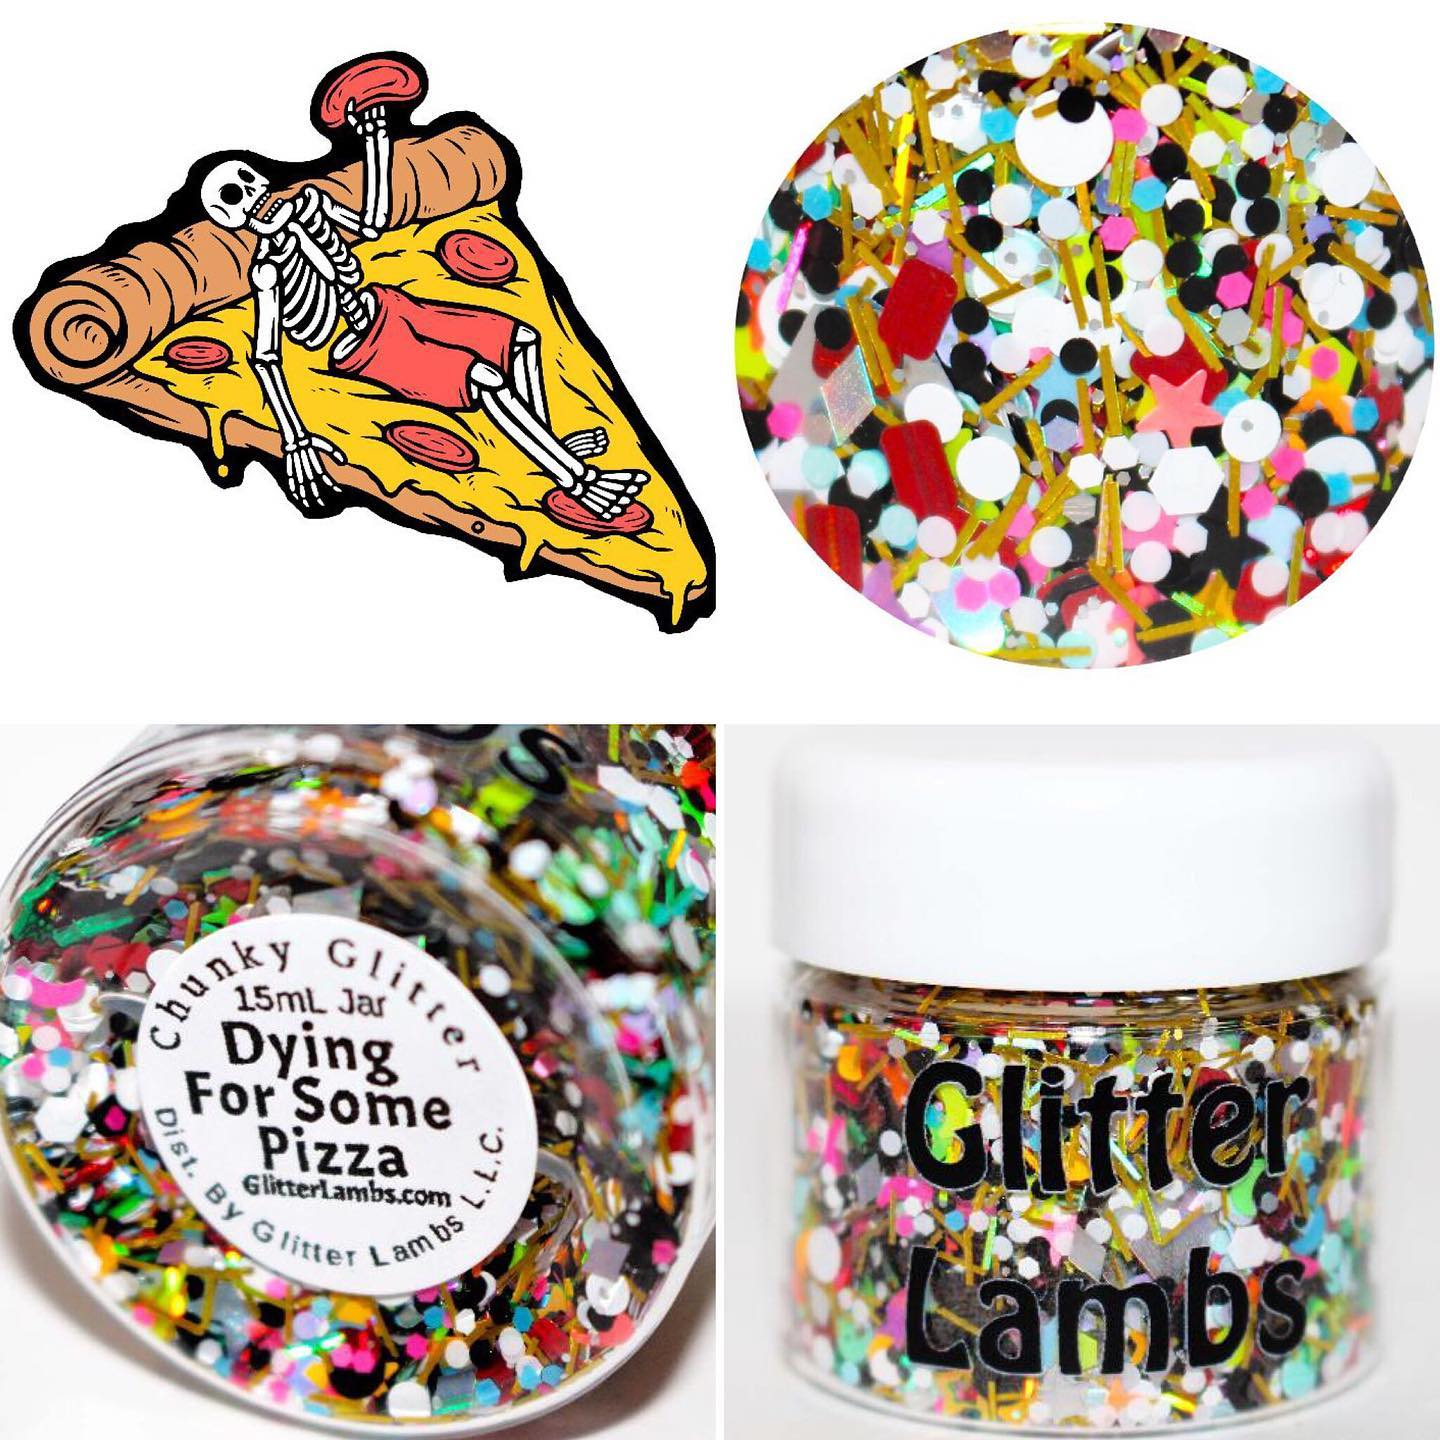 Dying For Some Pizza Glitter by GlitterLambs.com